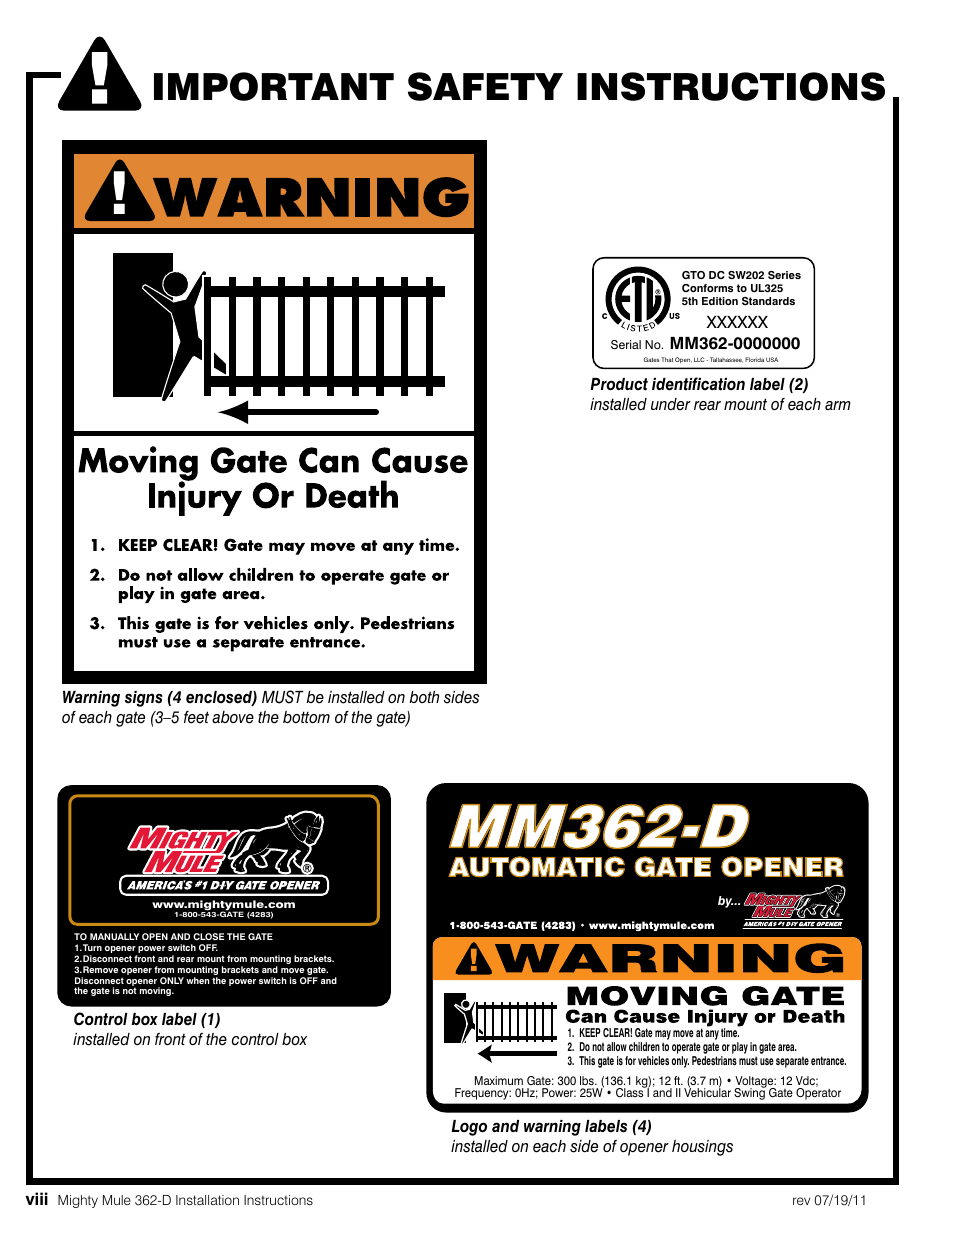 Mm362 D Important Safety Instructions Automatic Gate